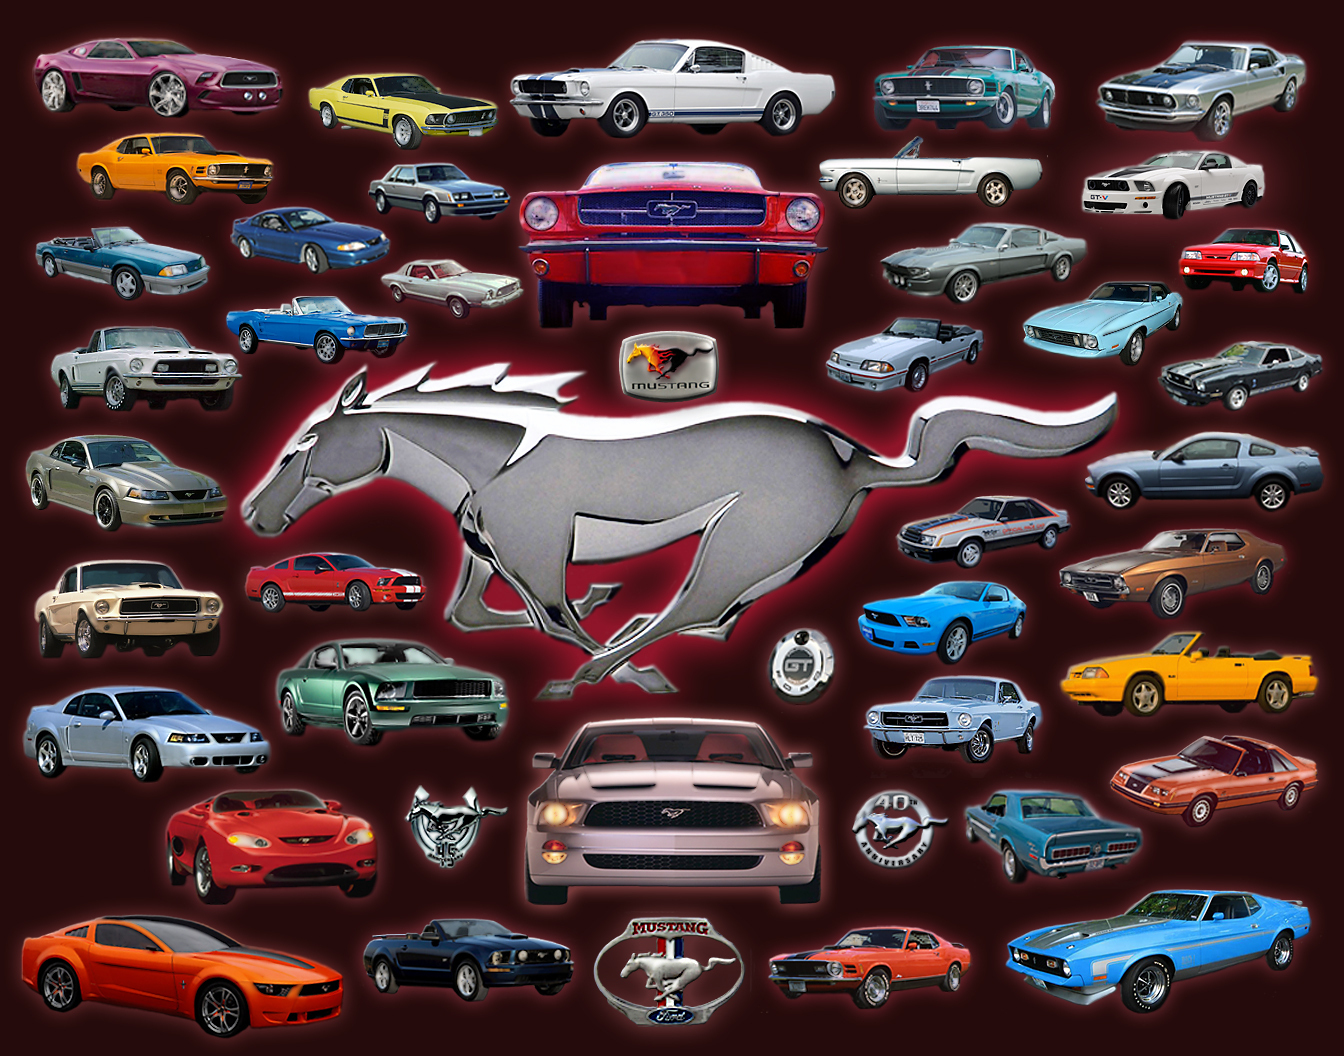 Ford Mustang Collage Ford Photo 22556158 Fanpop